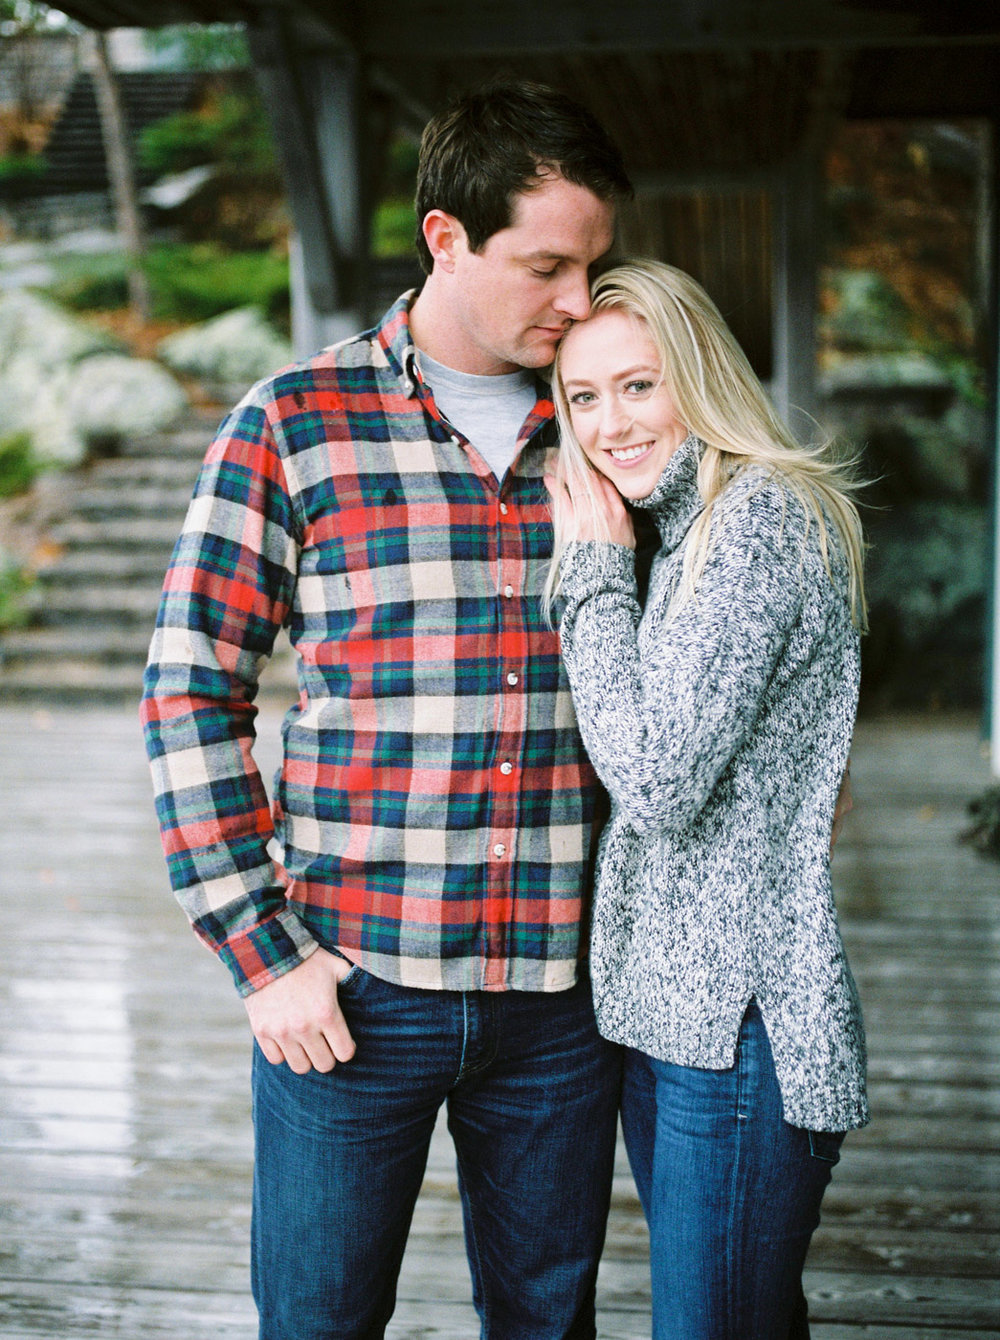 Haley & Joe Engagement Film 2016 Web-15.jpg